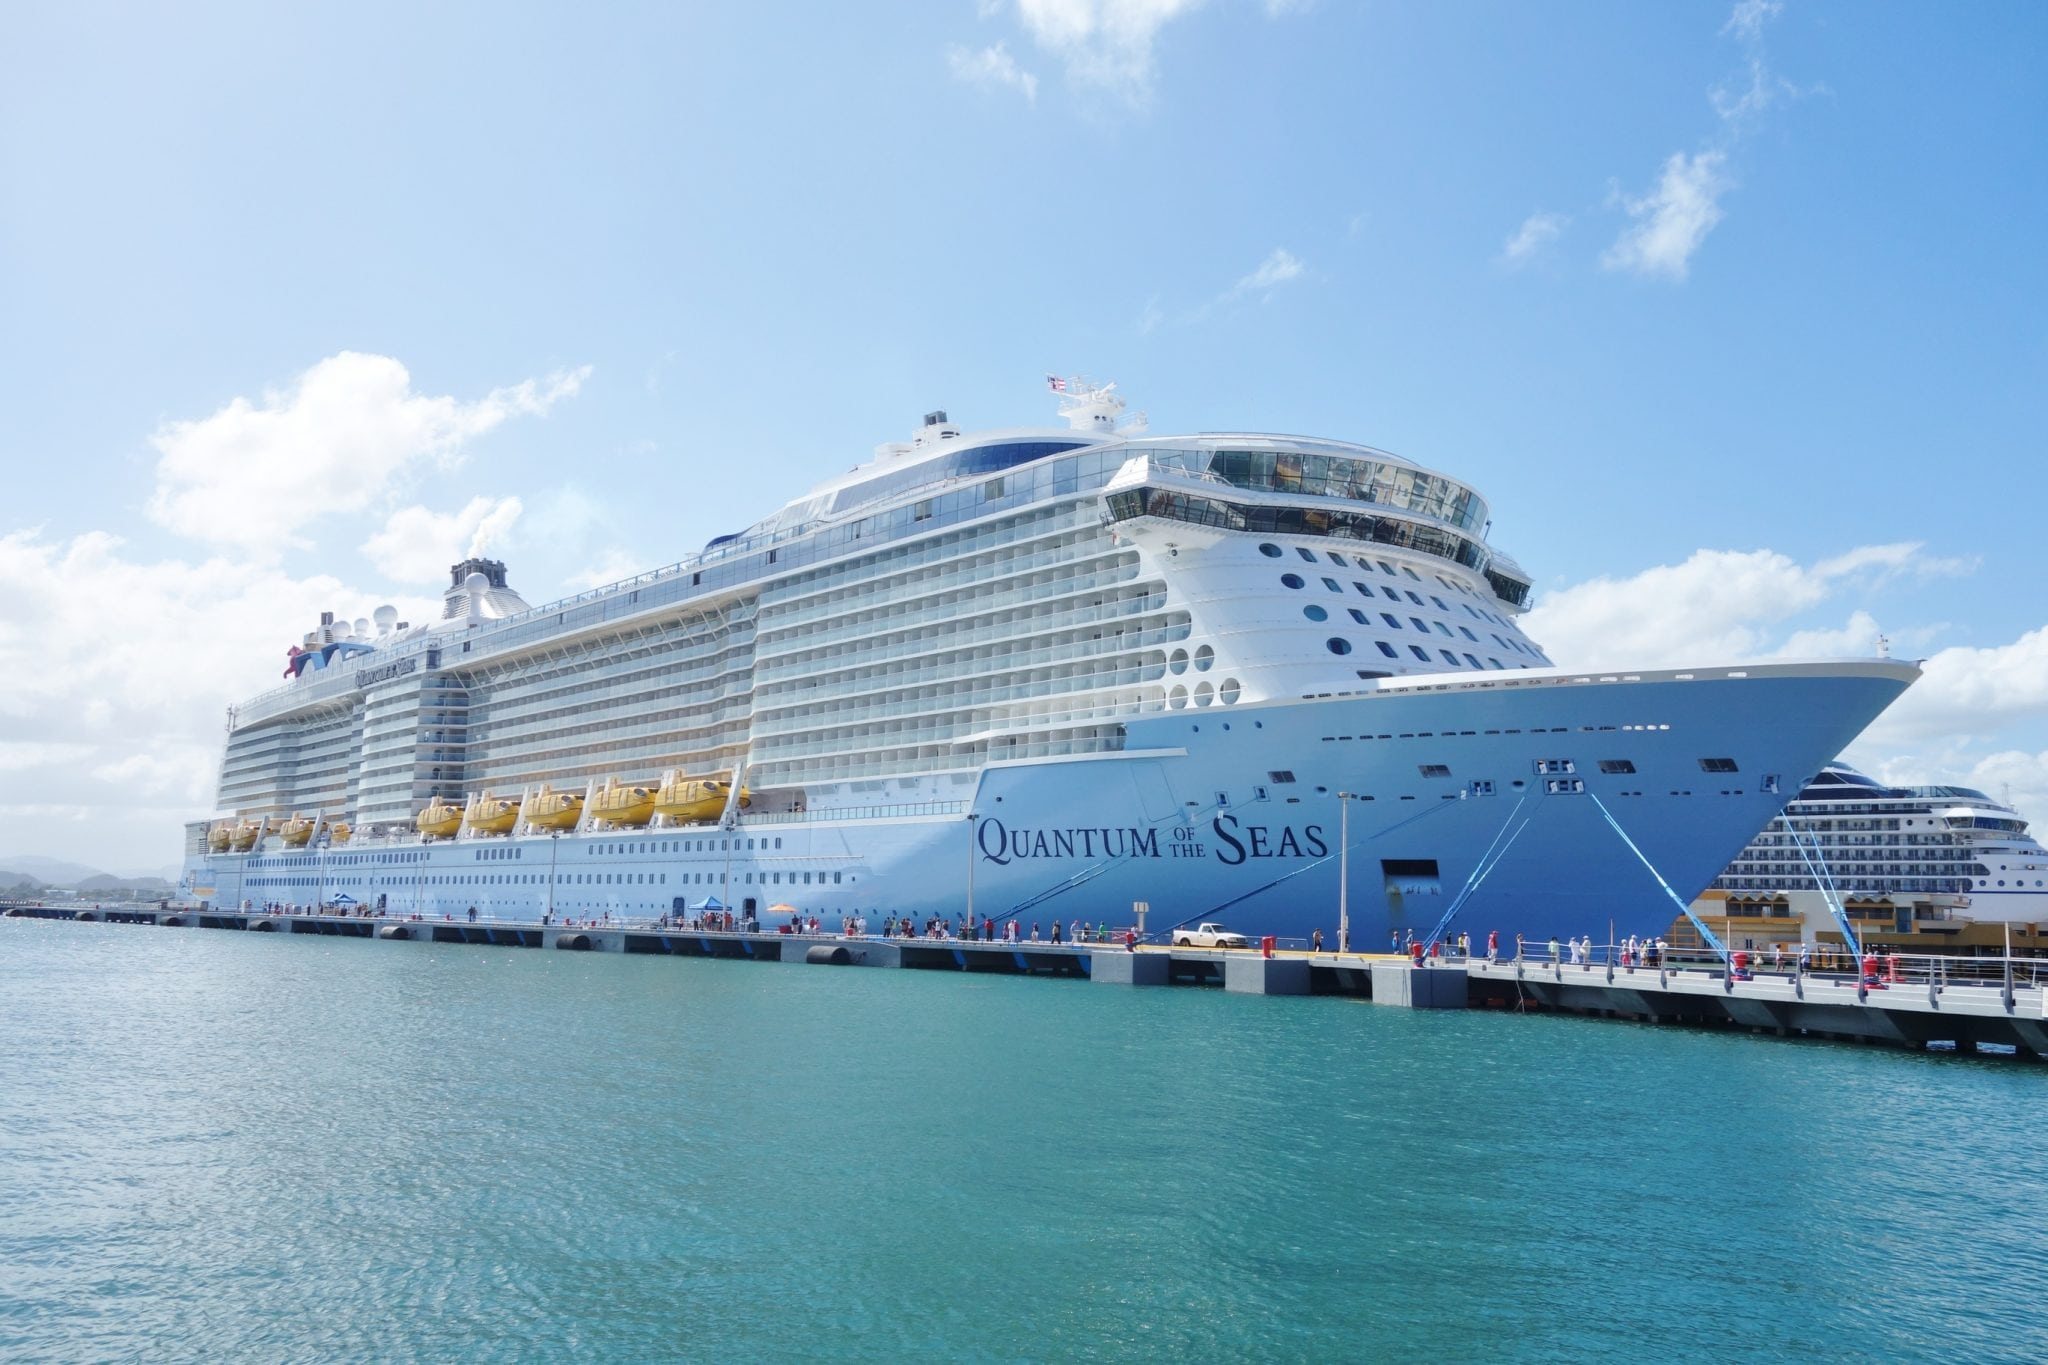 Qauntum of the Seas